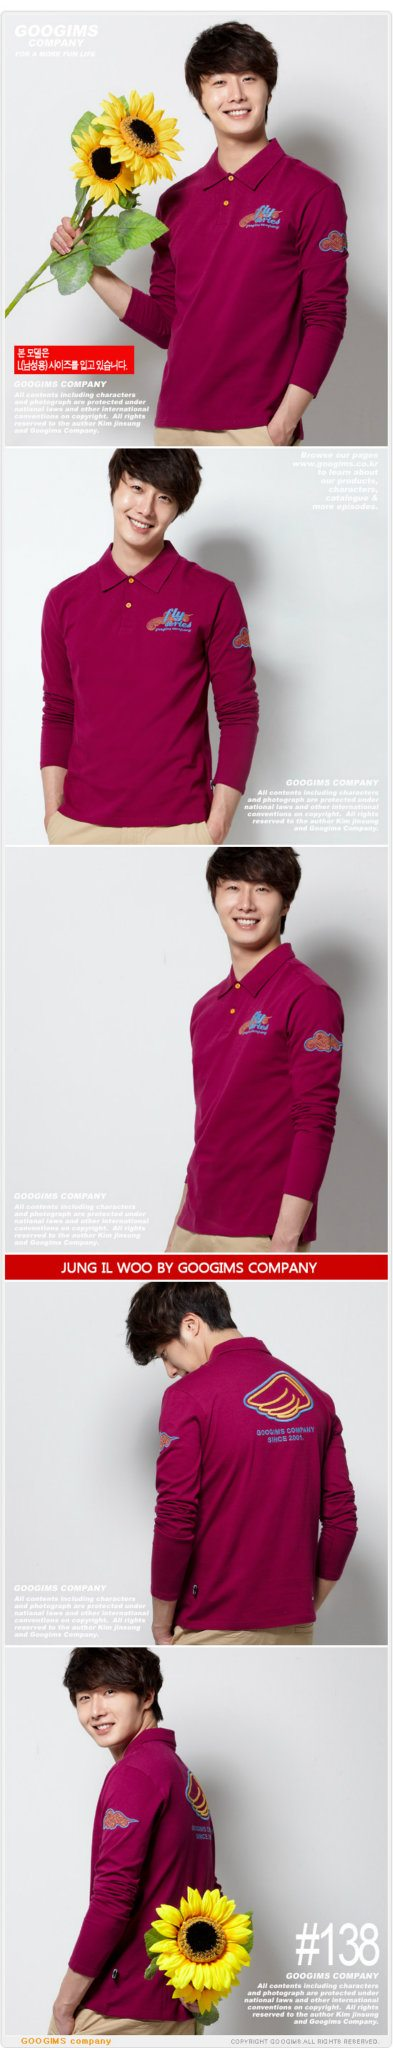 2011 10 Jung II-woo for Googims. Part 100054